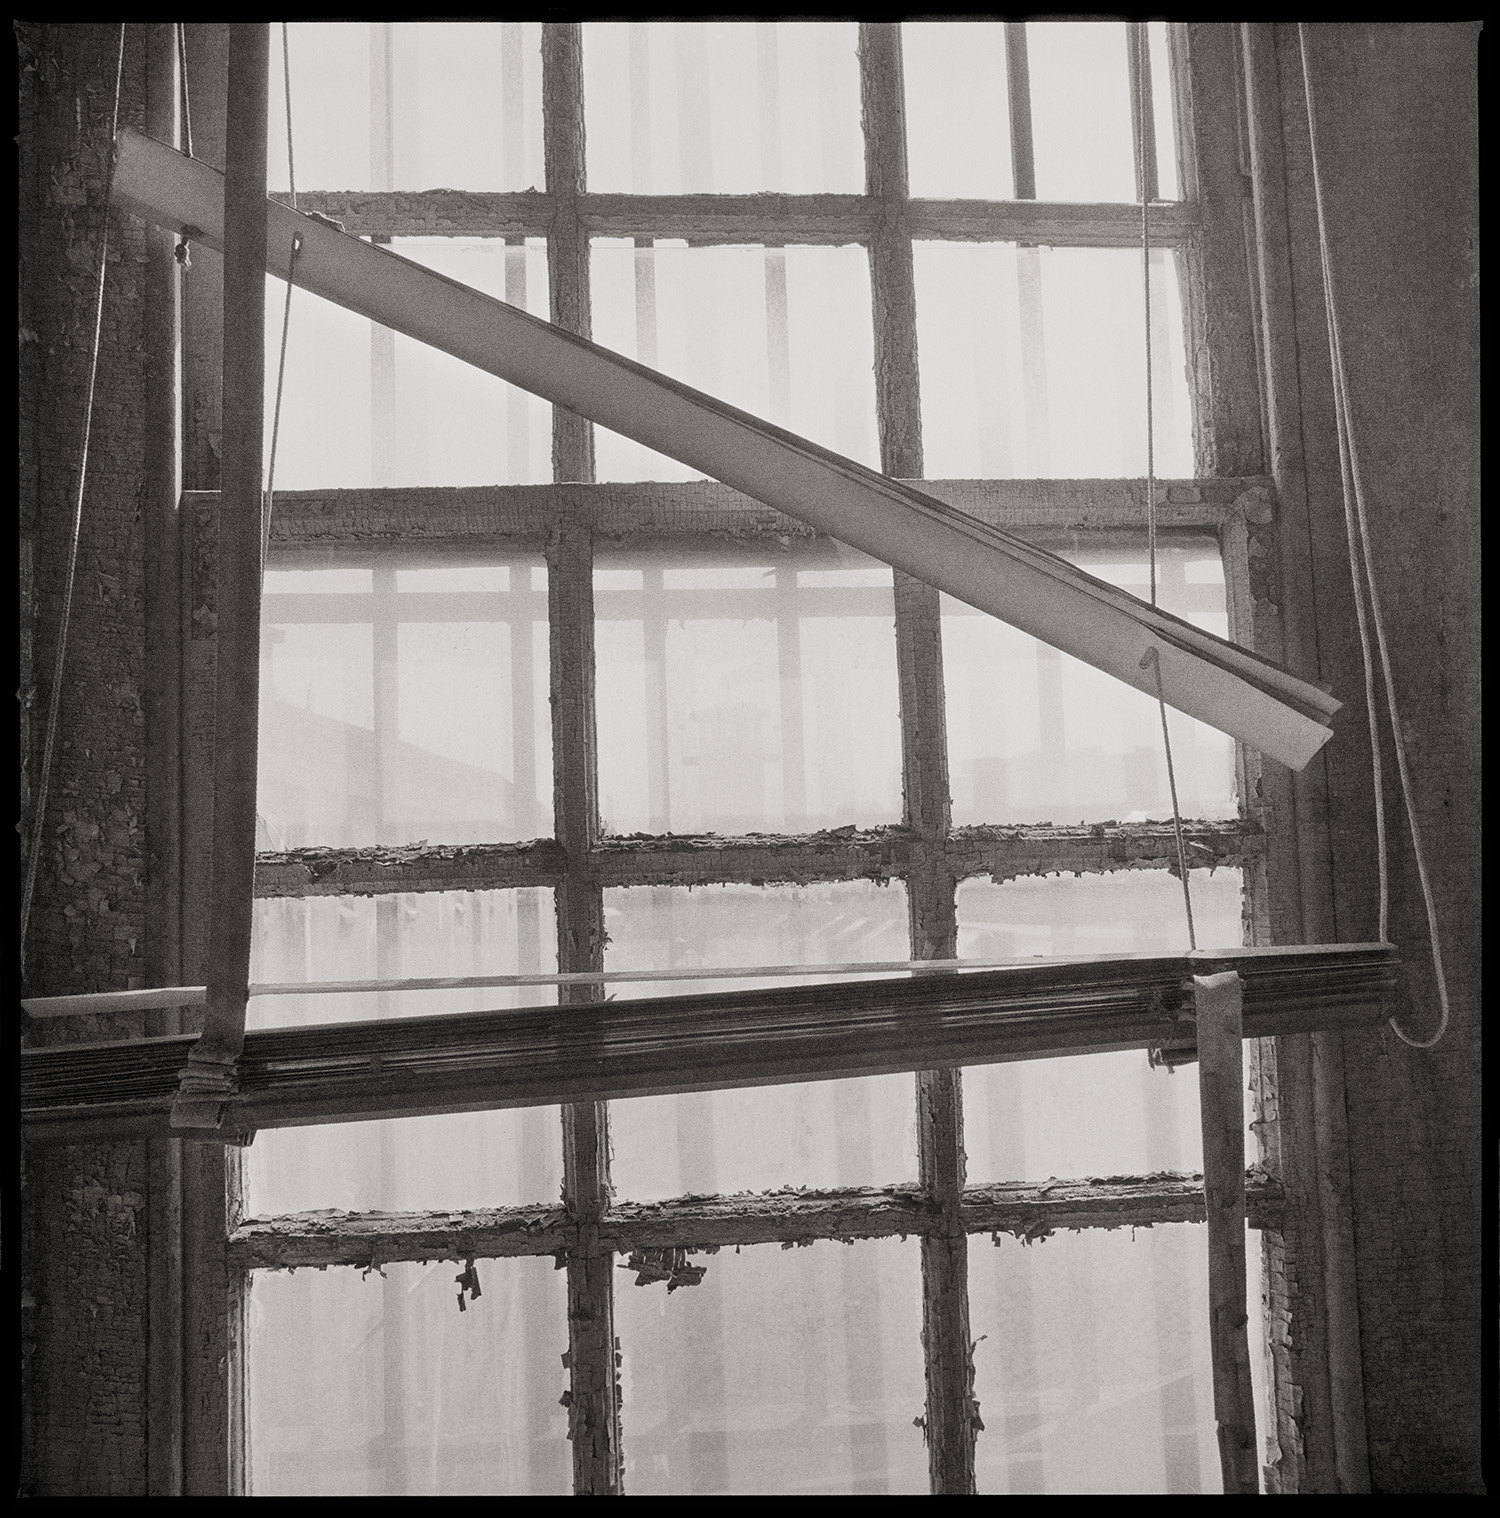 Image from the series Thou Art...,, Wil Give... by Eric T. Kunsman, which are all from the Eastern State Penitentiary in Philadelphia, PA.